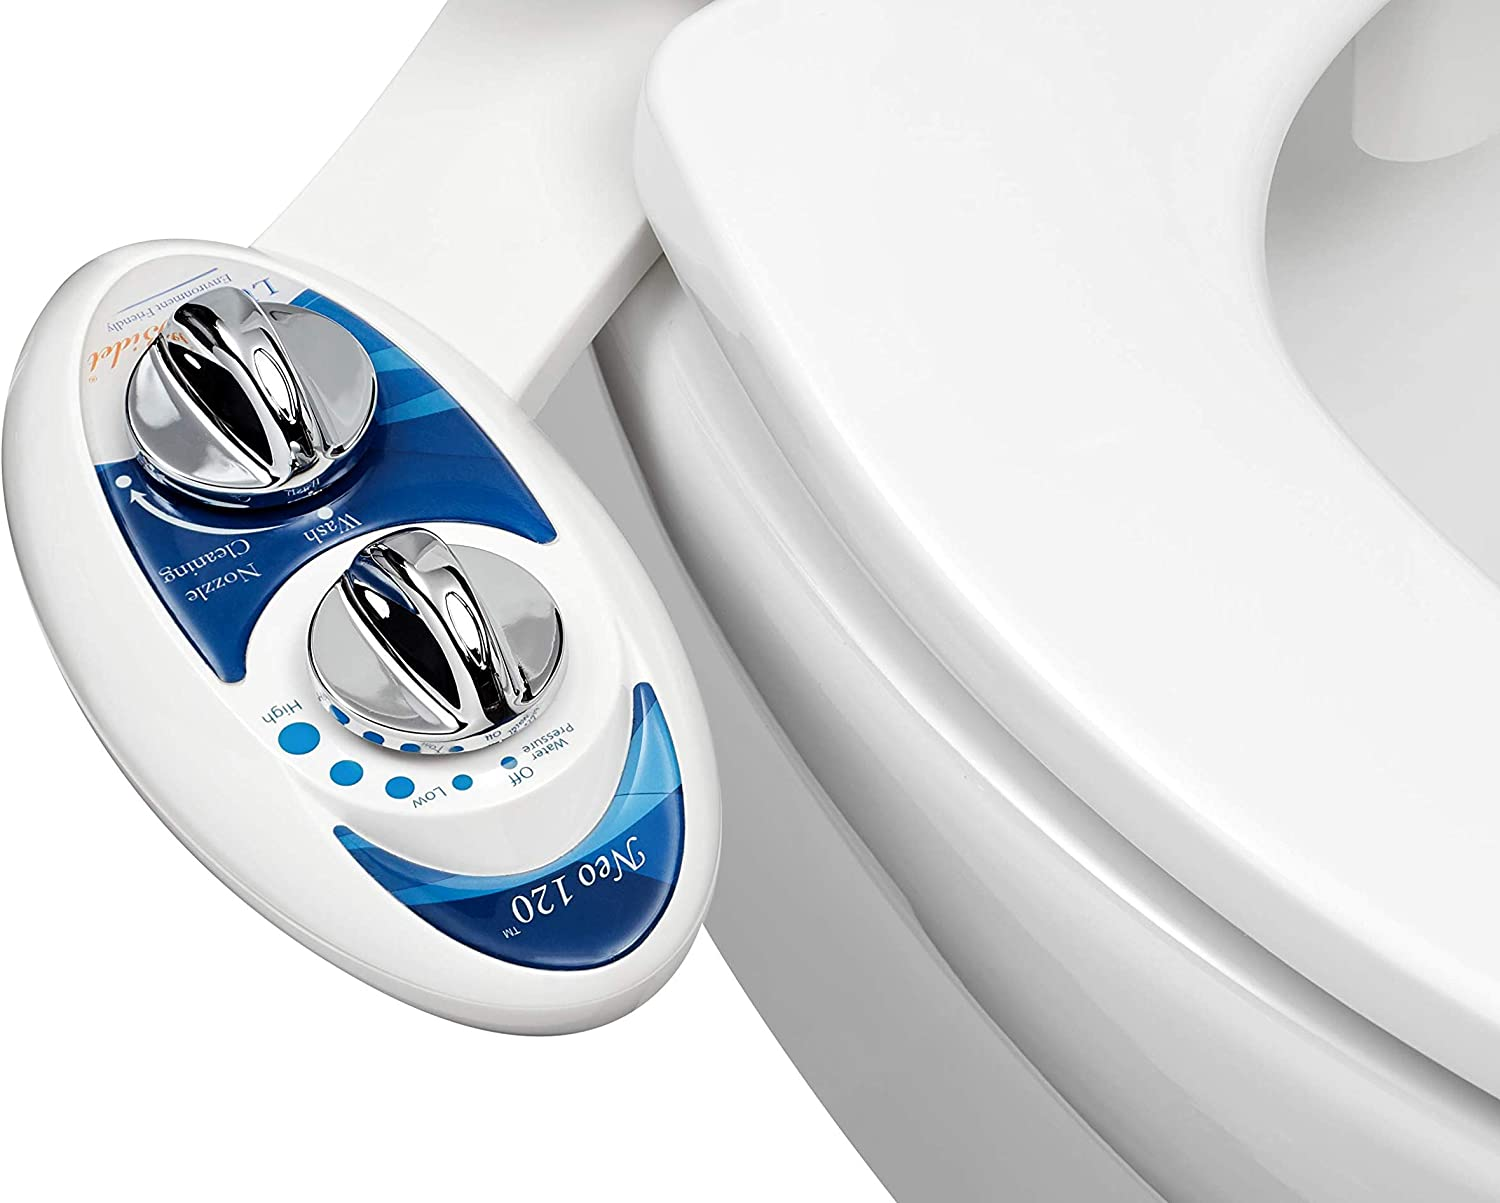 LUXE Bidet Neo 120 - Self Fresh Nozzle Cleaning Water Non-Elec Los Angeles Mall Albuquerque Mall